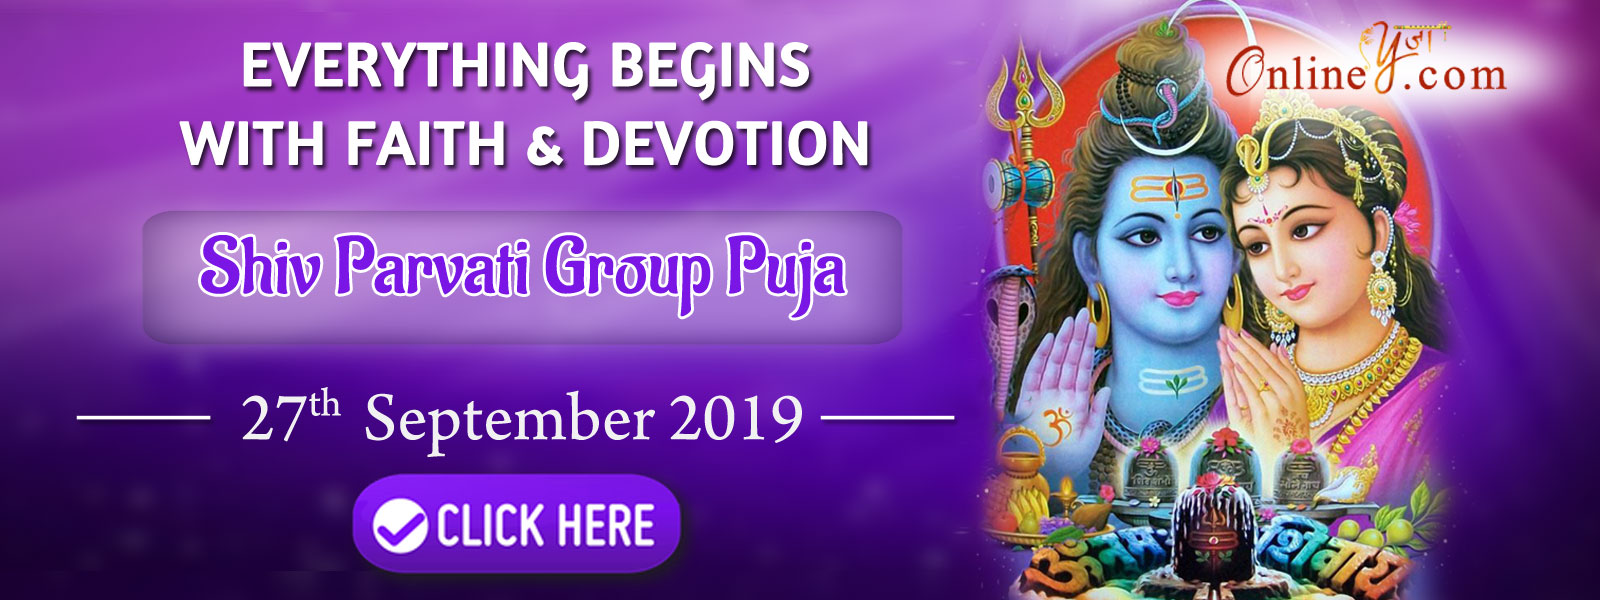 Free Online Puja Services, Hindu Temple Yagyas, Homams